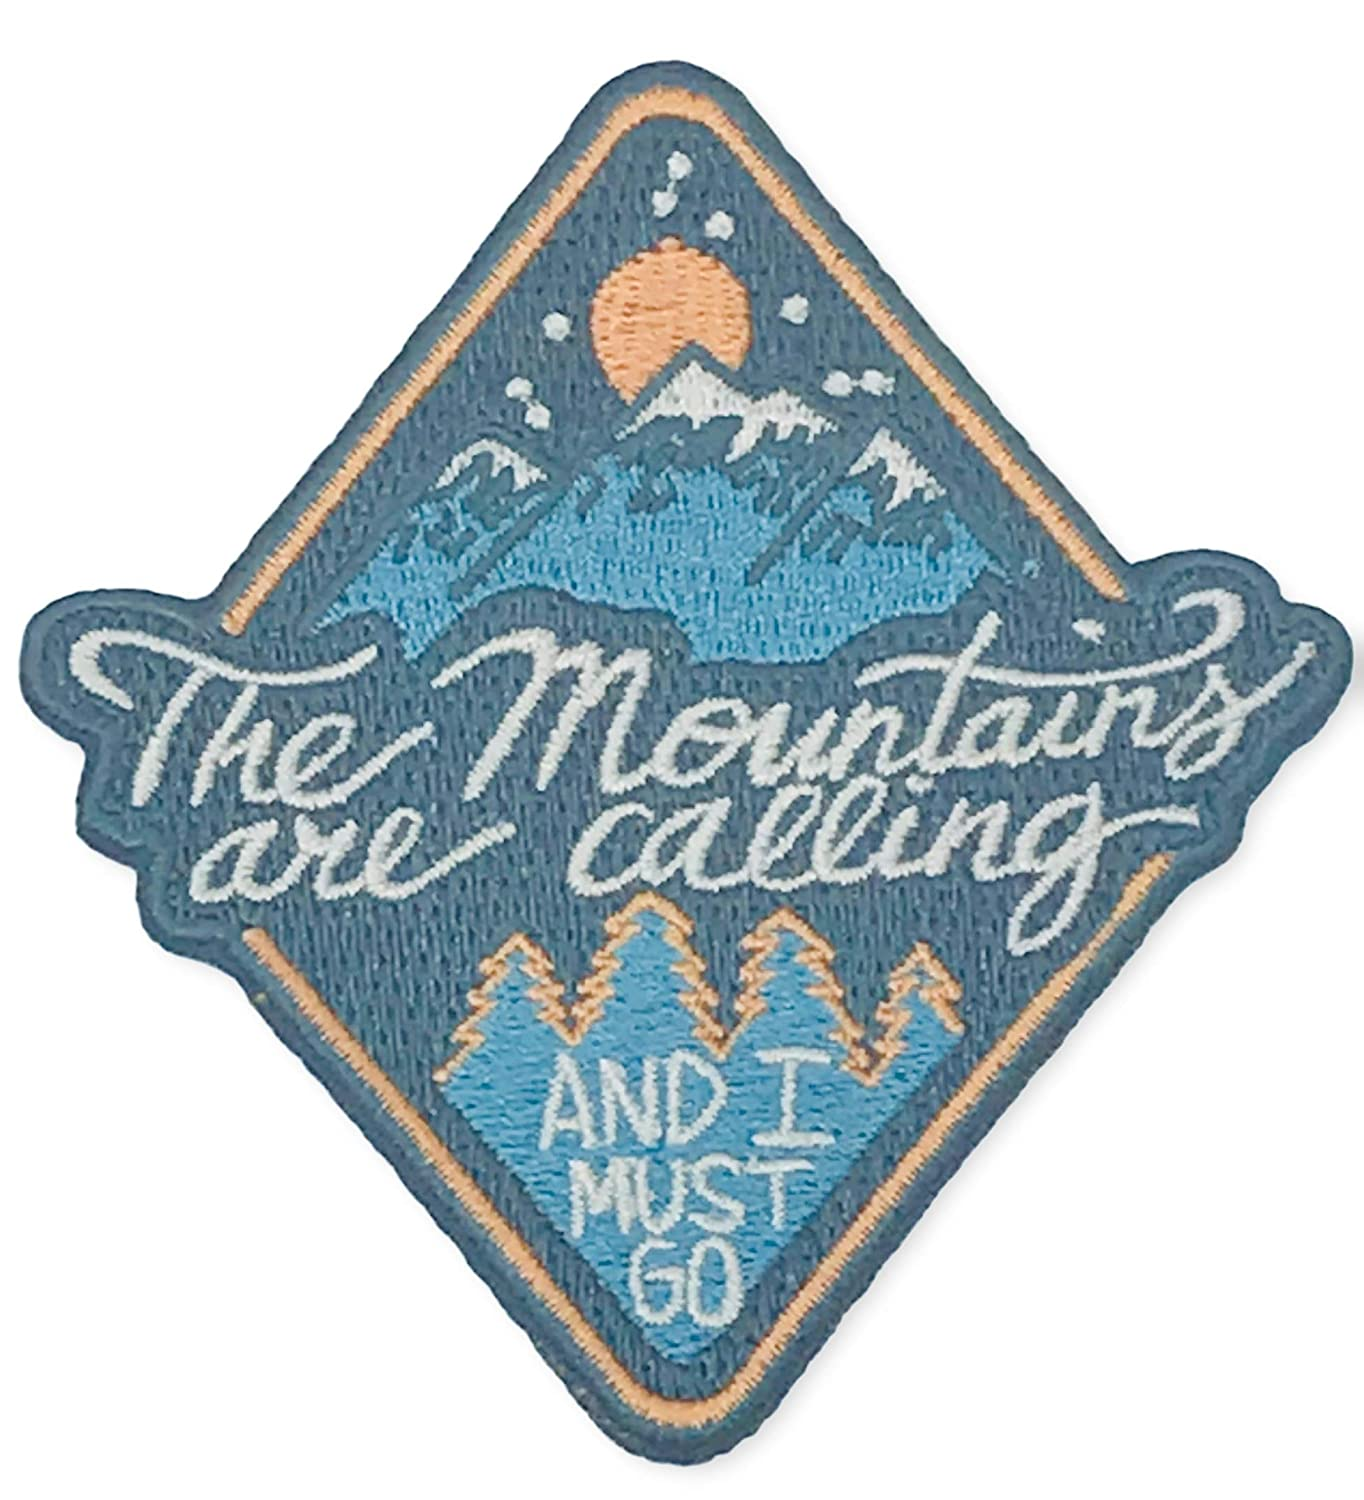 O'Houlihans - The Mountains are Calling and I Must Go Iron on Patch - Hiking, Camping, Travel, Adventure Patch O' Houlihans 4337021106